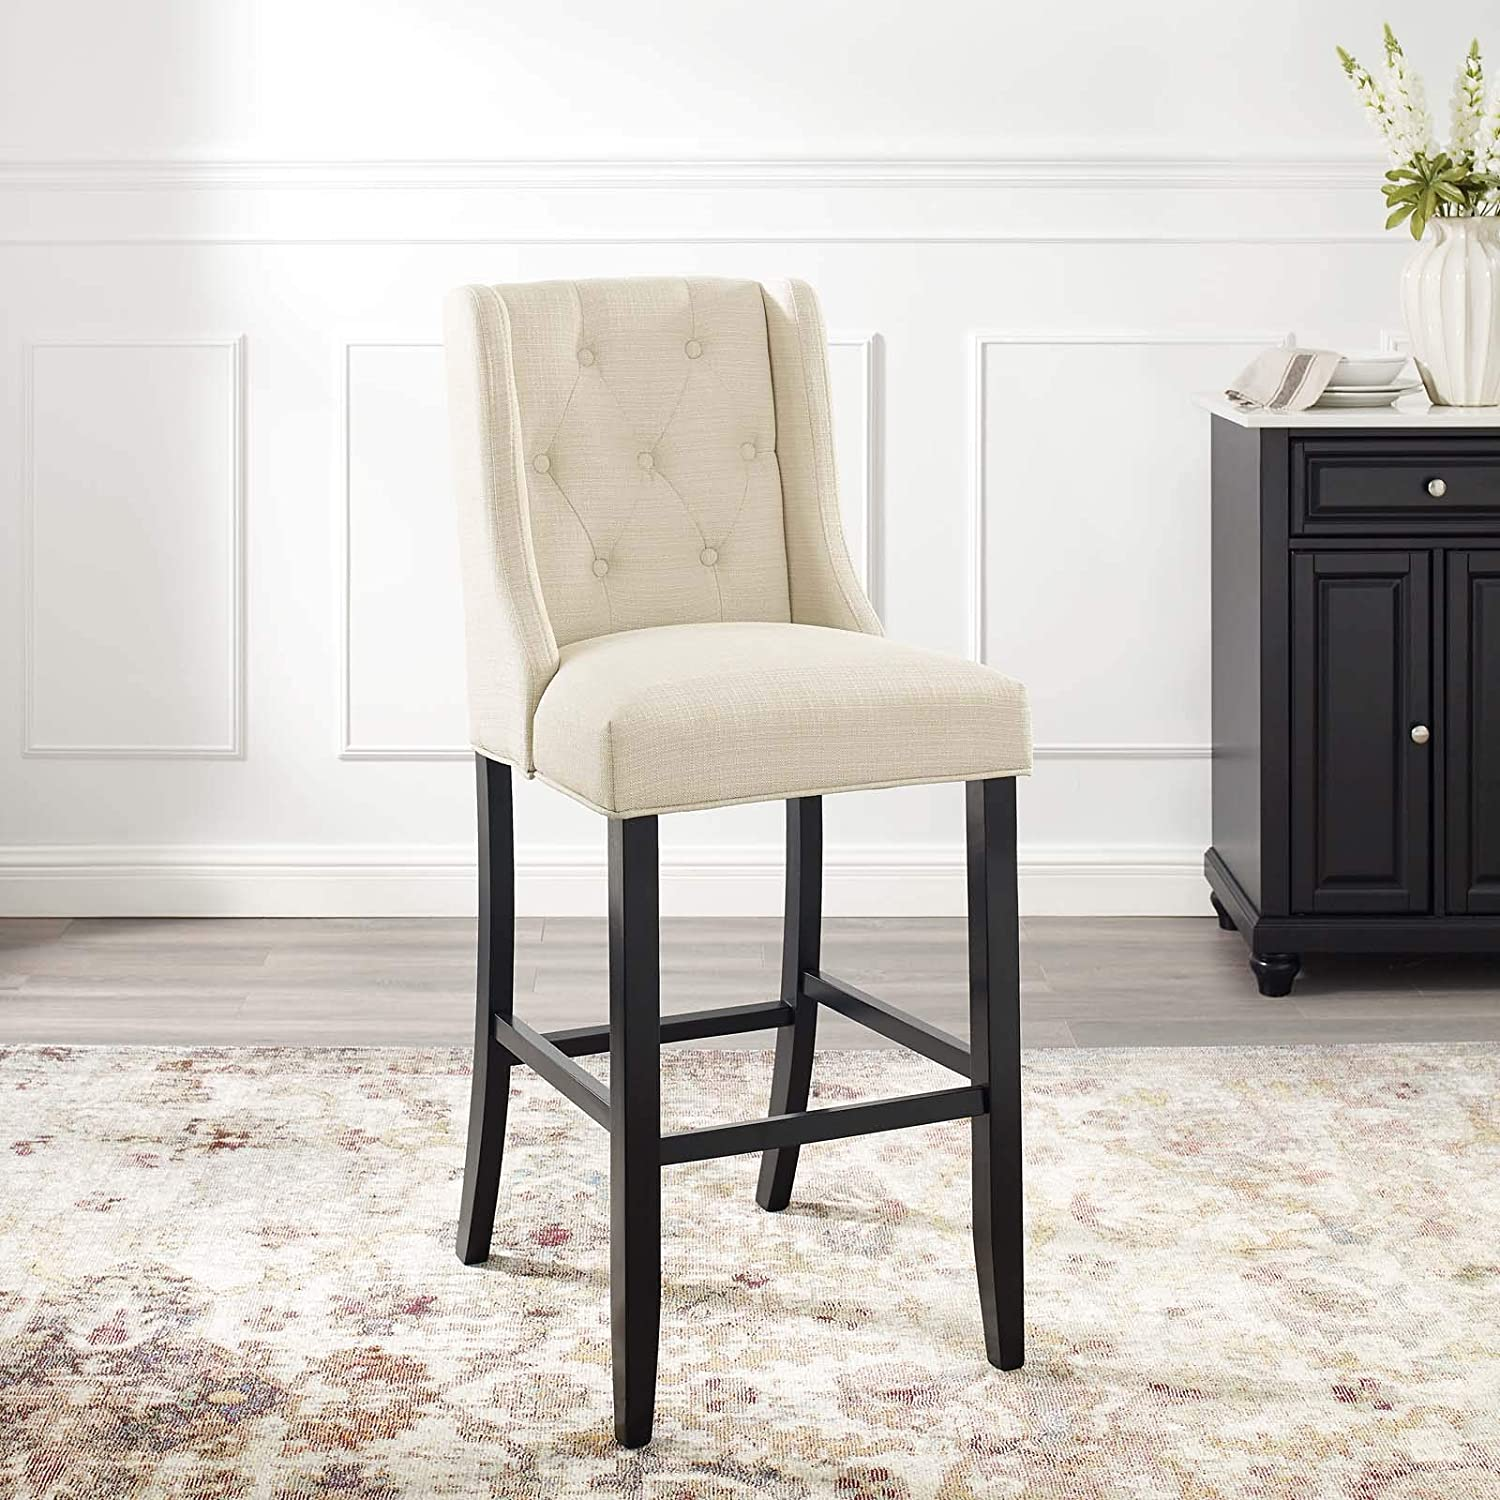 Modway Baronet Tufted Button Fabric Bar Stool in Beige, 1